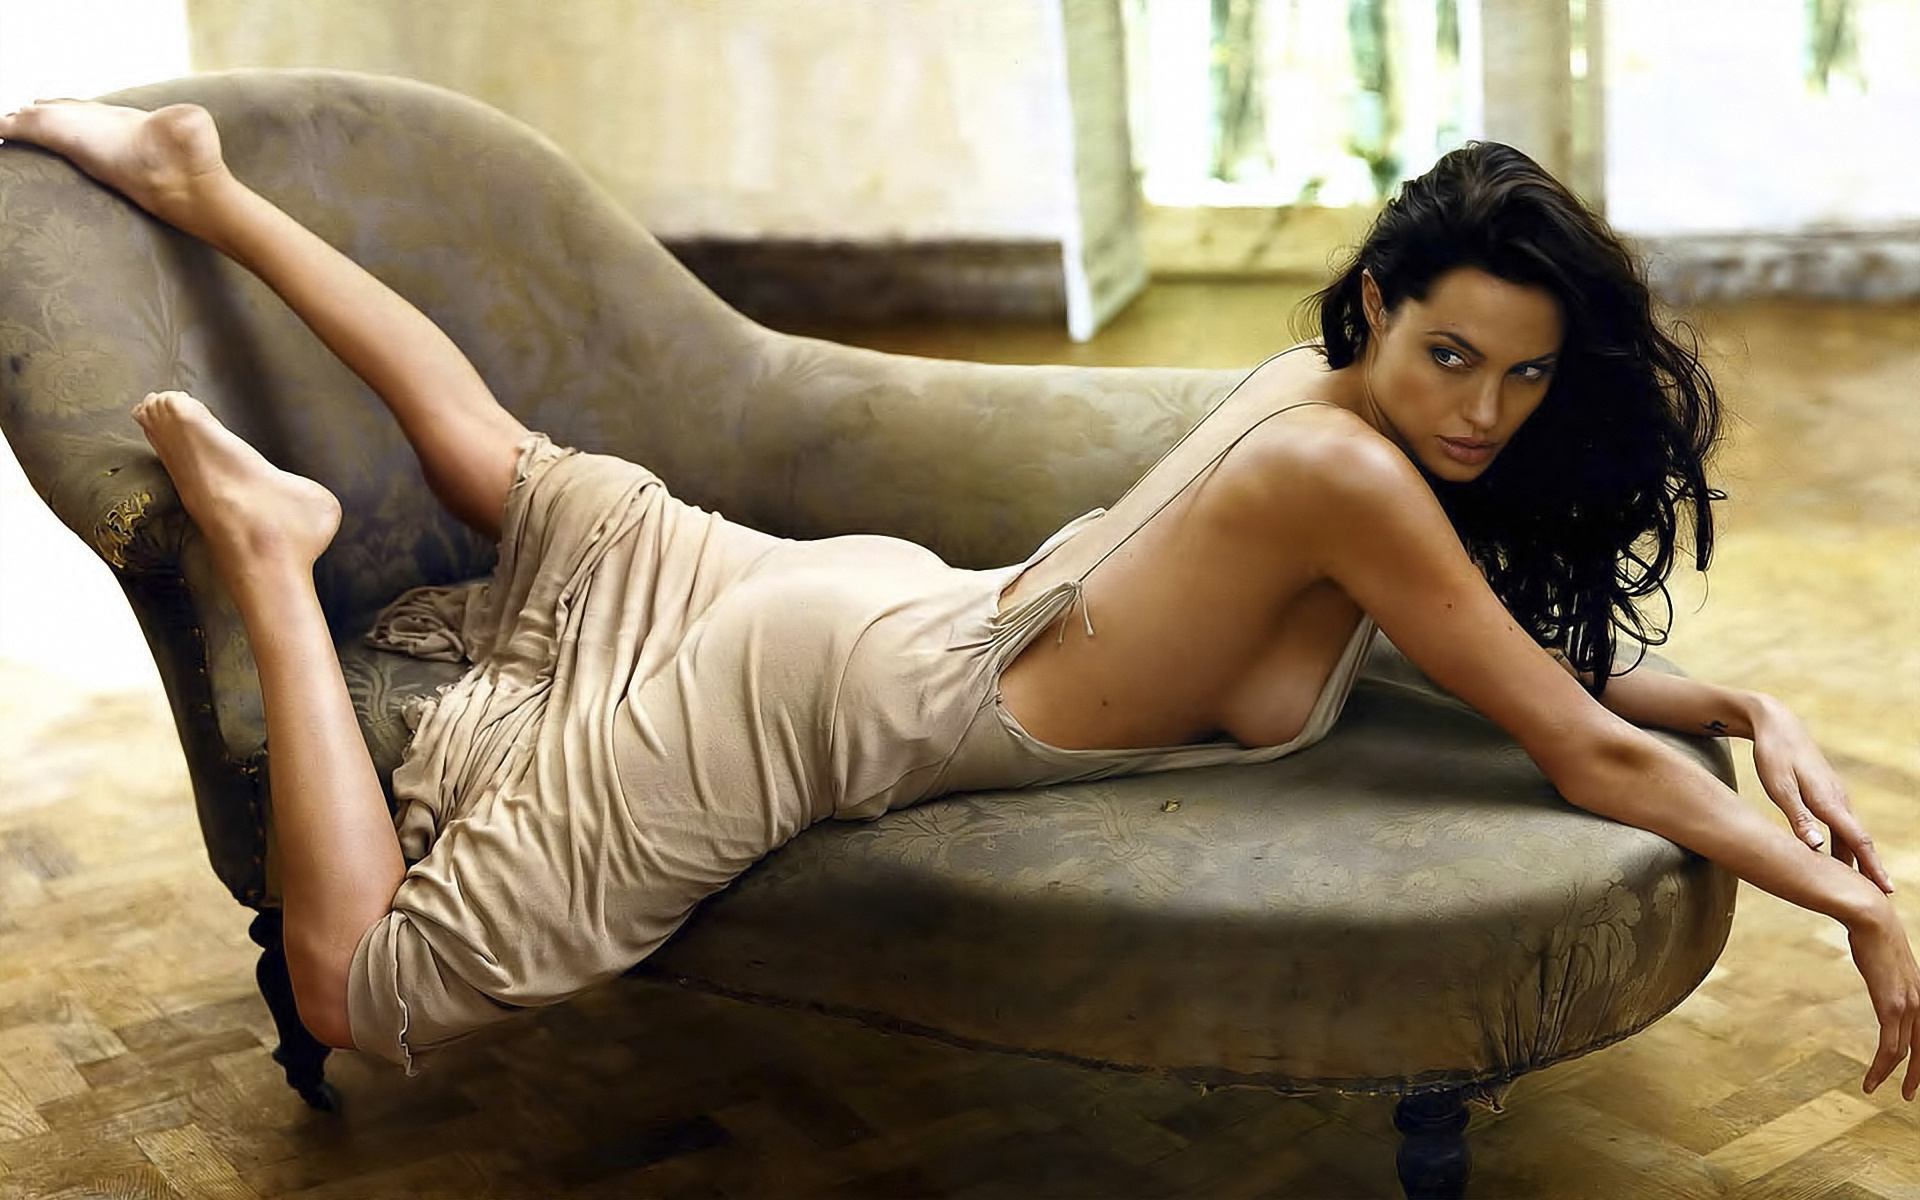 nude pics of hollywood actresses  648192